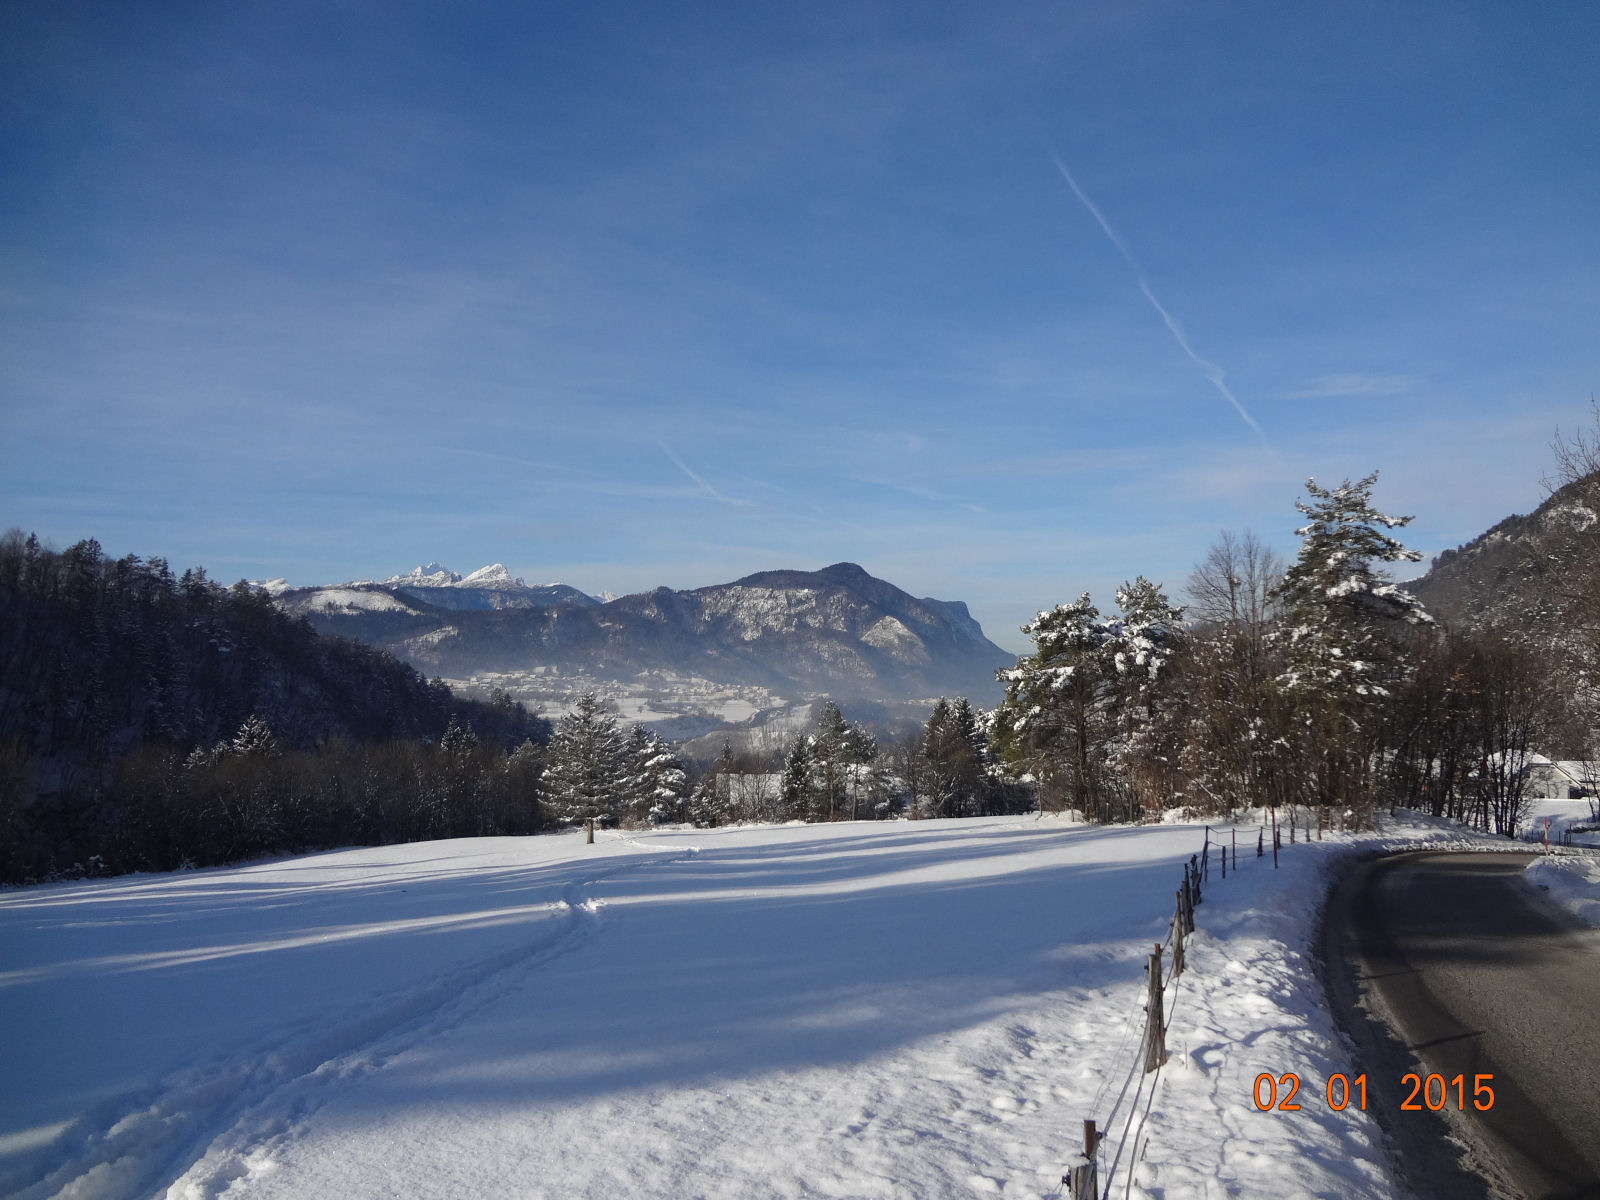 Plenty of snow and clear blue sky over Gorenjska, Slovenia